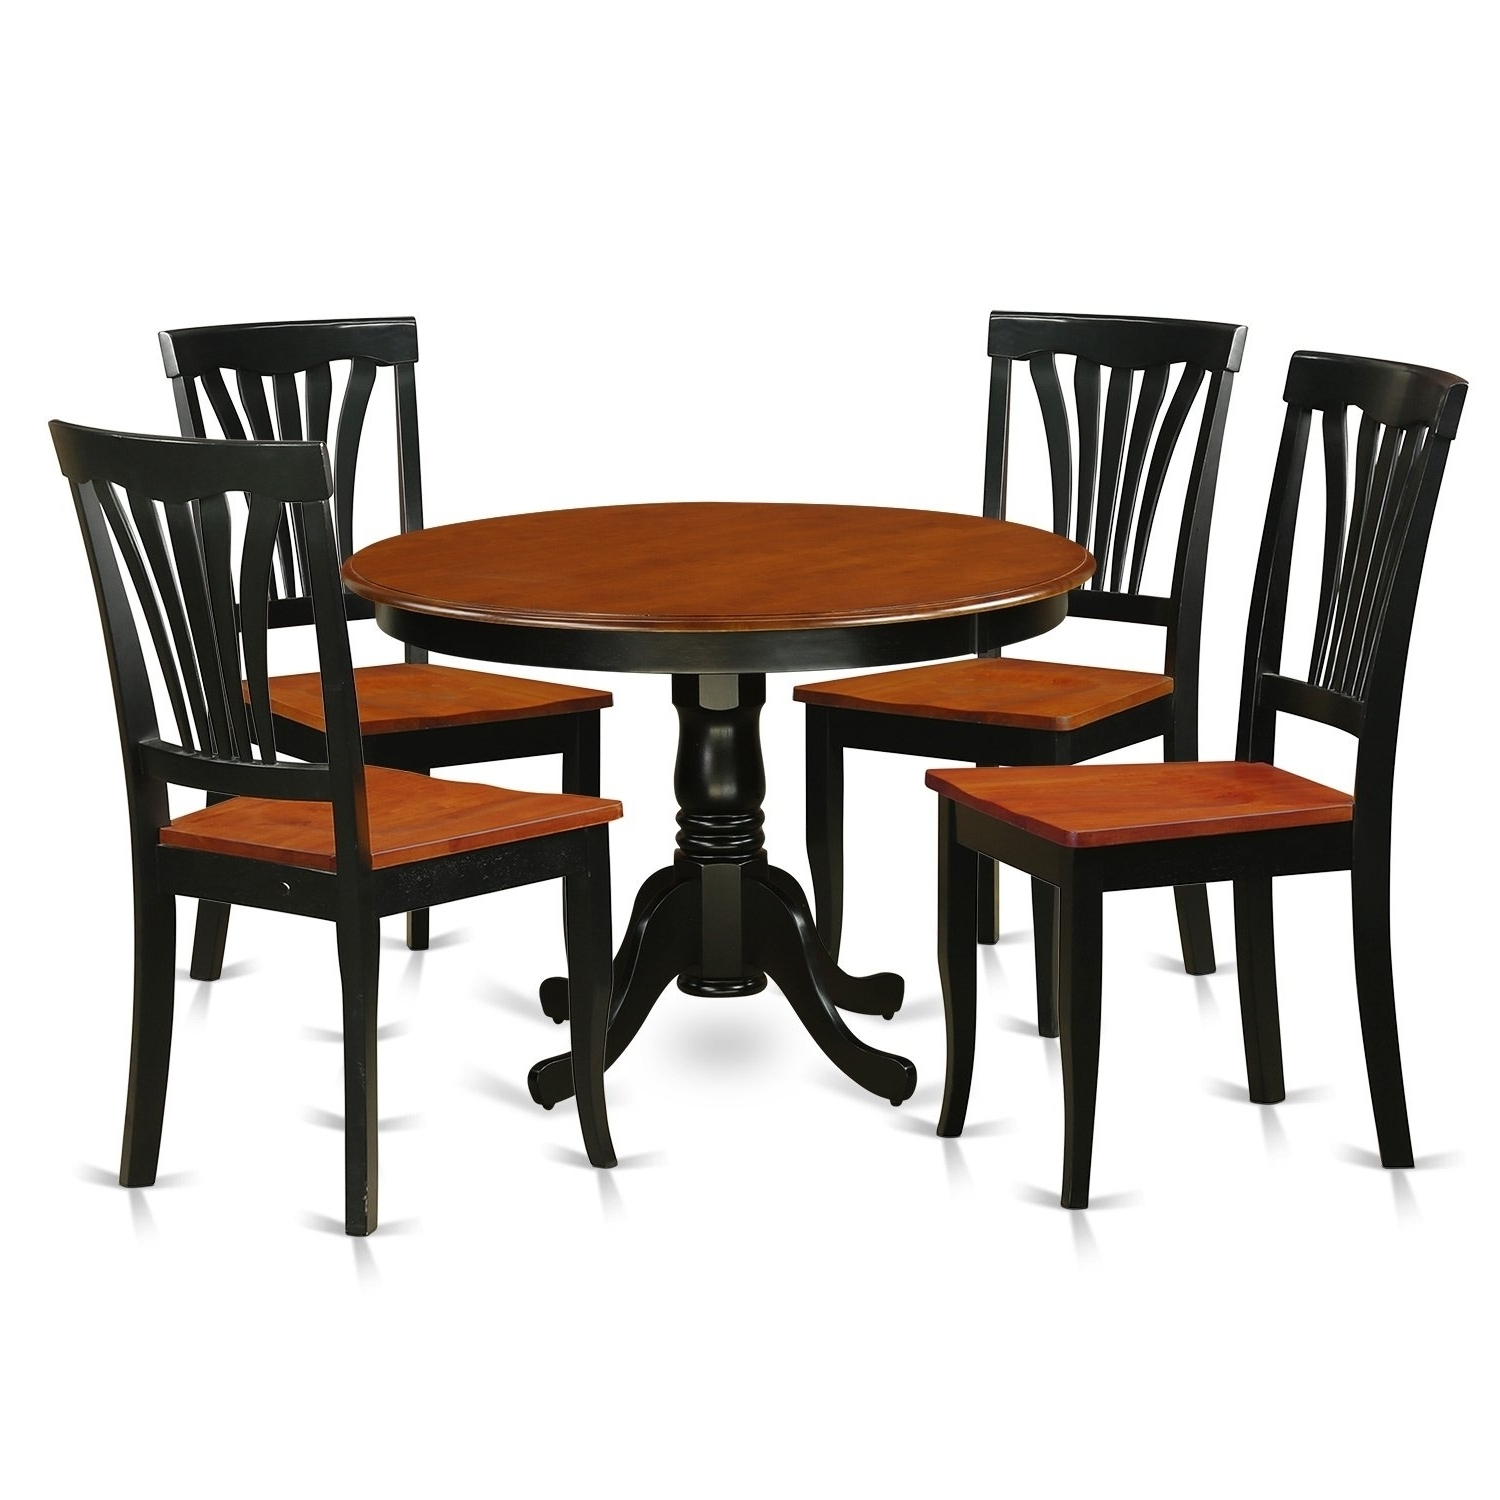 Widely Used Hlav5 W 5 Pc Table Set With A Dinette Table And 4 Dining Chairs Throughout Caden 5 Piece Round Dining Sets With Upholstered Side Chairs (View 4 of 25)